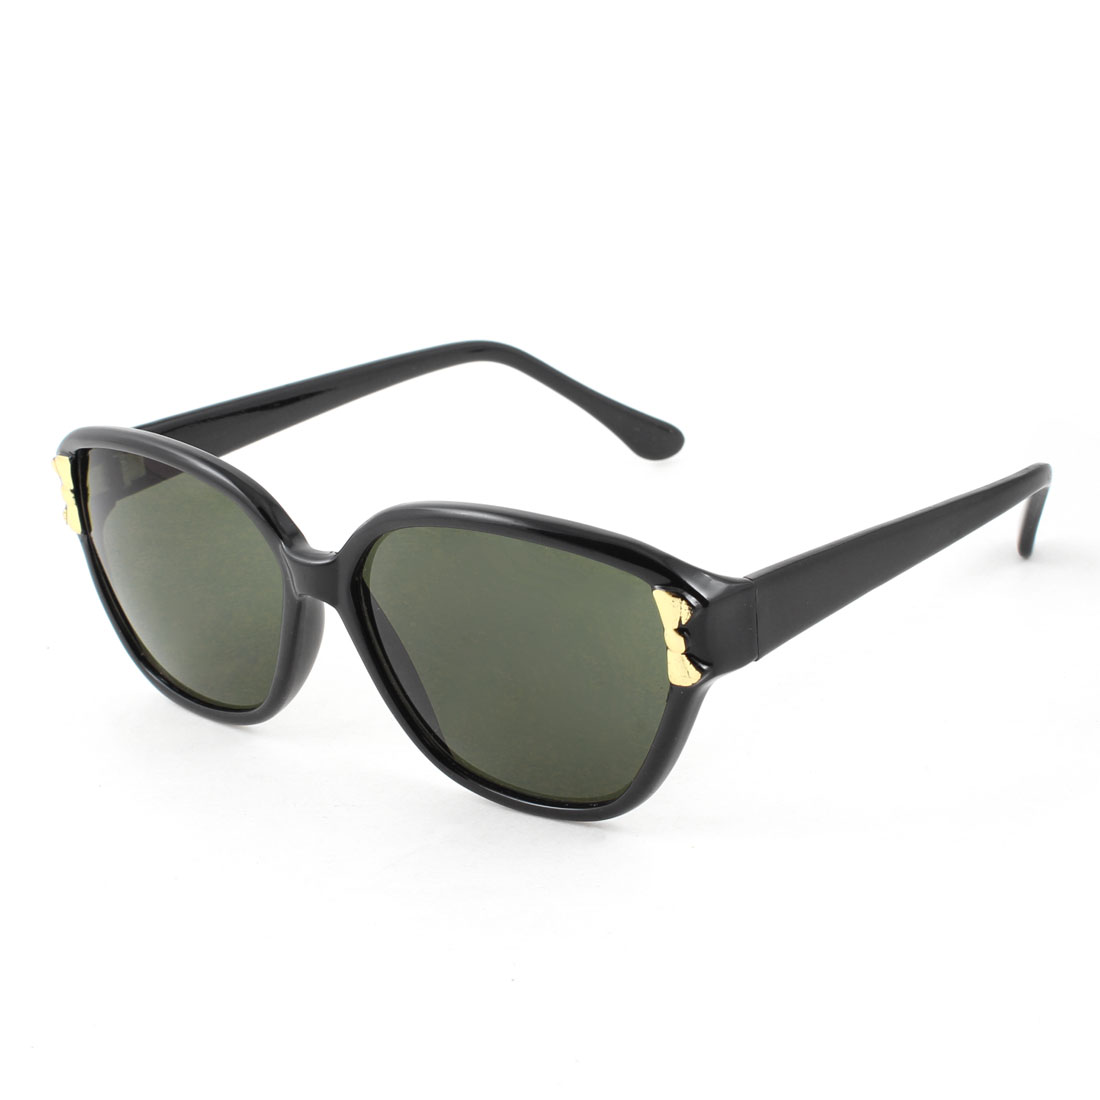 Woman Lady Single Bridge Dark Green Lens Black Arms Full Frame Sunglasses